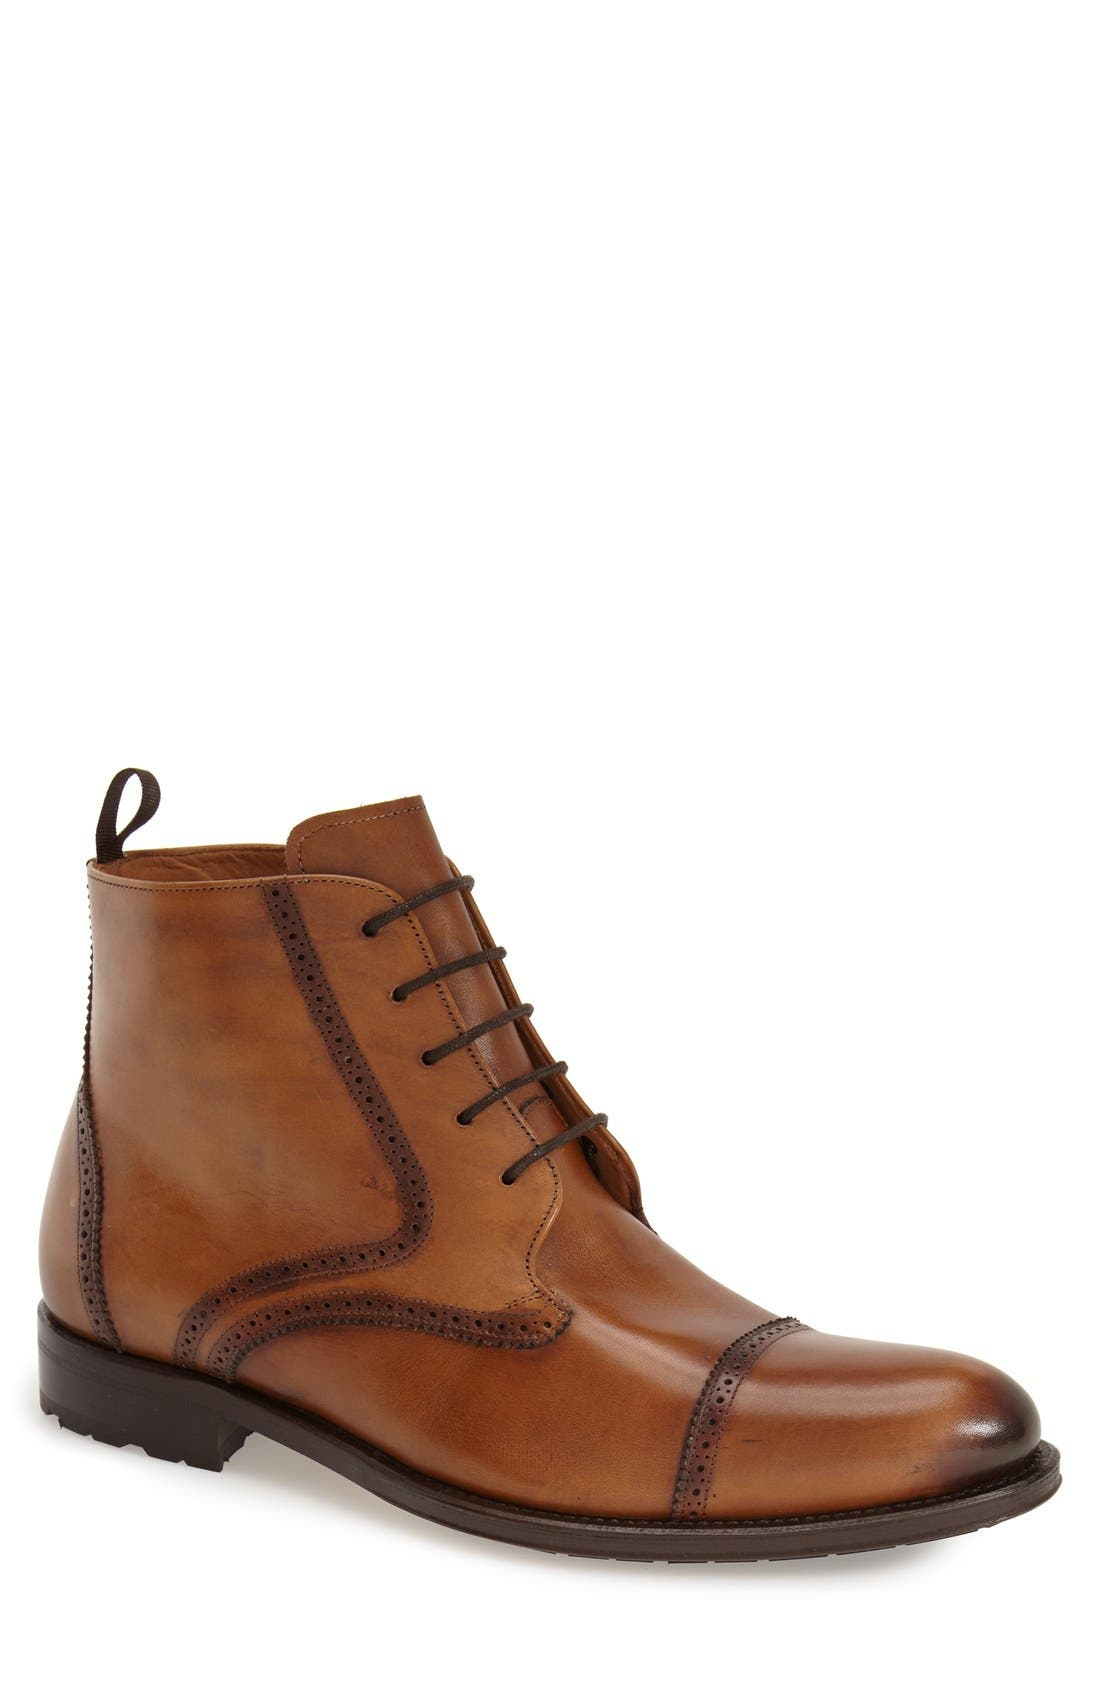 'Breman' Boot,                             Main thumbnail 1, color,                             235